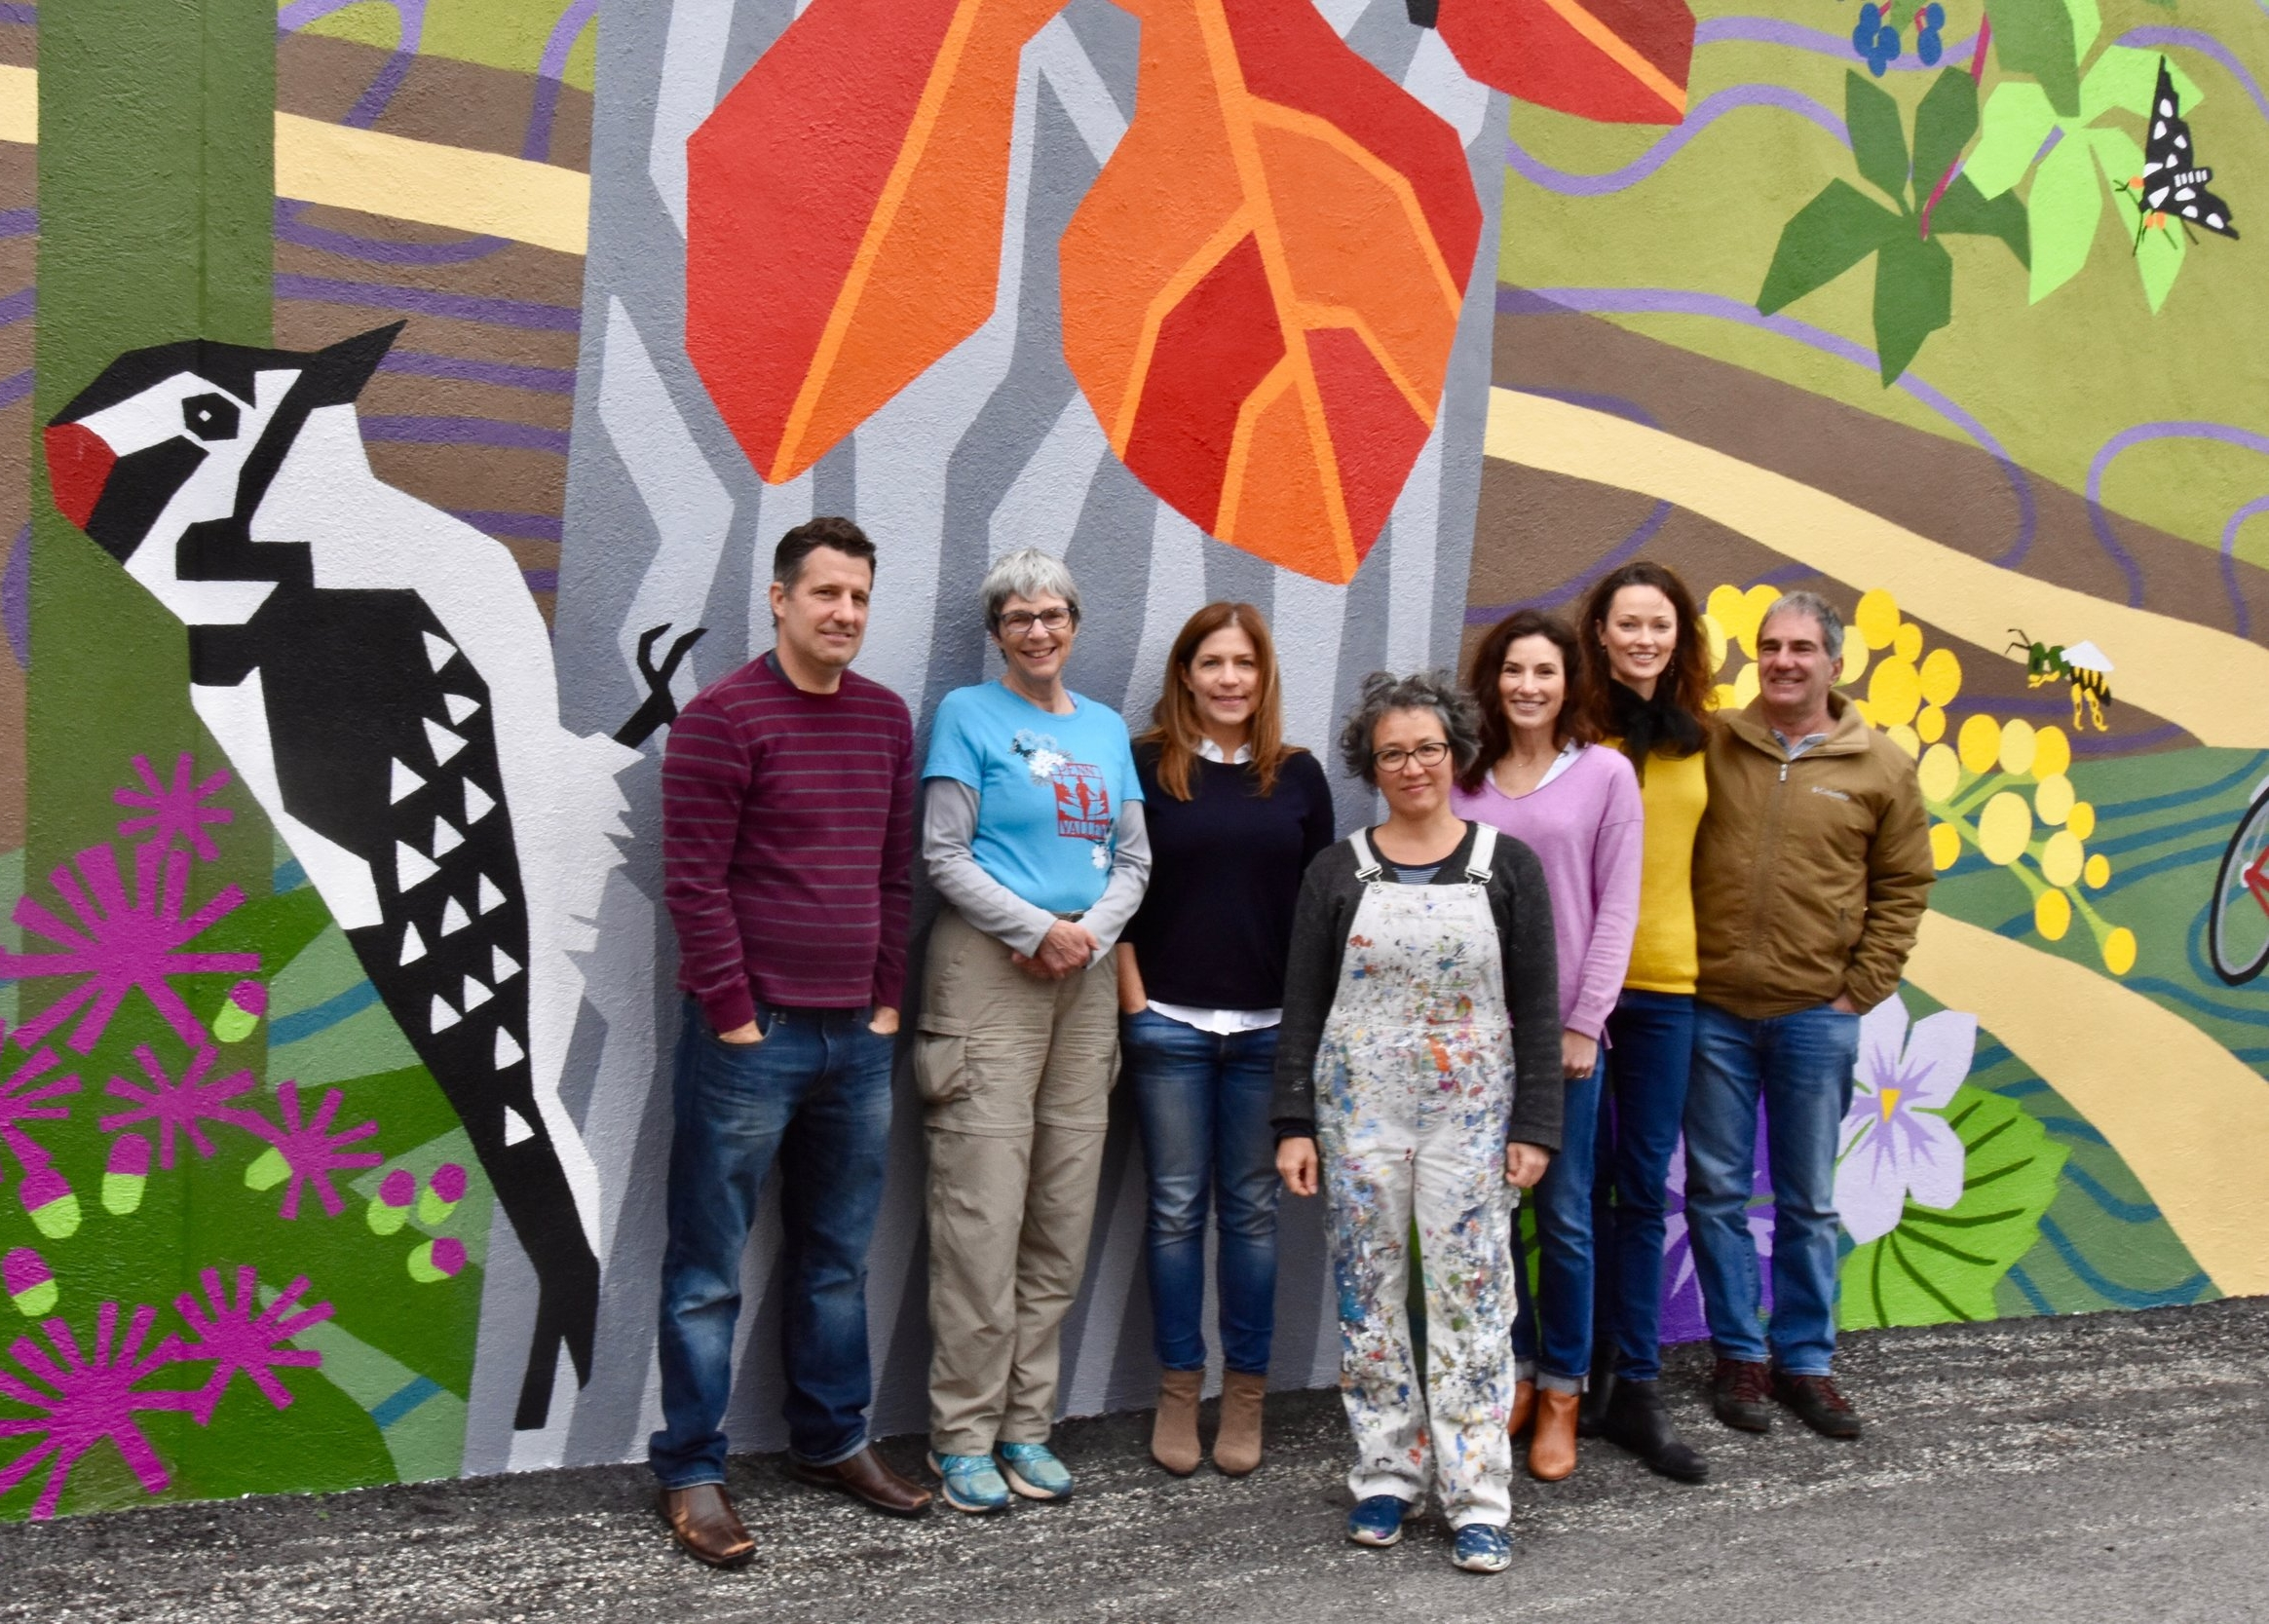 Thanks  to this great team who helped make the mural project a huge success! From left to right, Steve Filippone (Vice President, Penn Valley Civic Association), Kitty Rapalyea (President of The Friends of the Cynwyd Heritage Trail), Jen Kelly (Treasurer, Penn Valley Civic Association), Eurhi Jones (Mural artist), Maria Wodraska (Mural painting assistant), Michelle Detwiler (President, Penn Valley Civic Association) and Dan Goldberg (owner of the Main Line Cycles building)